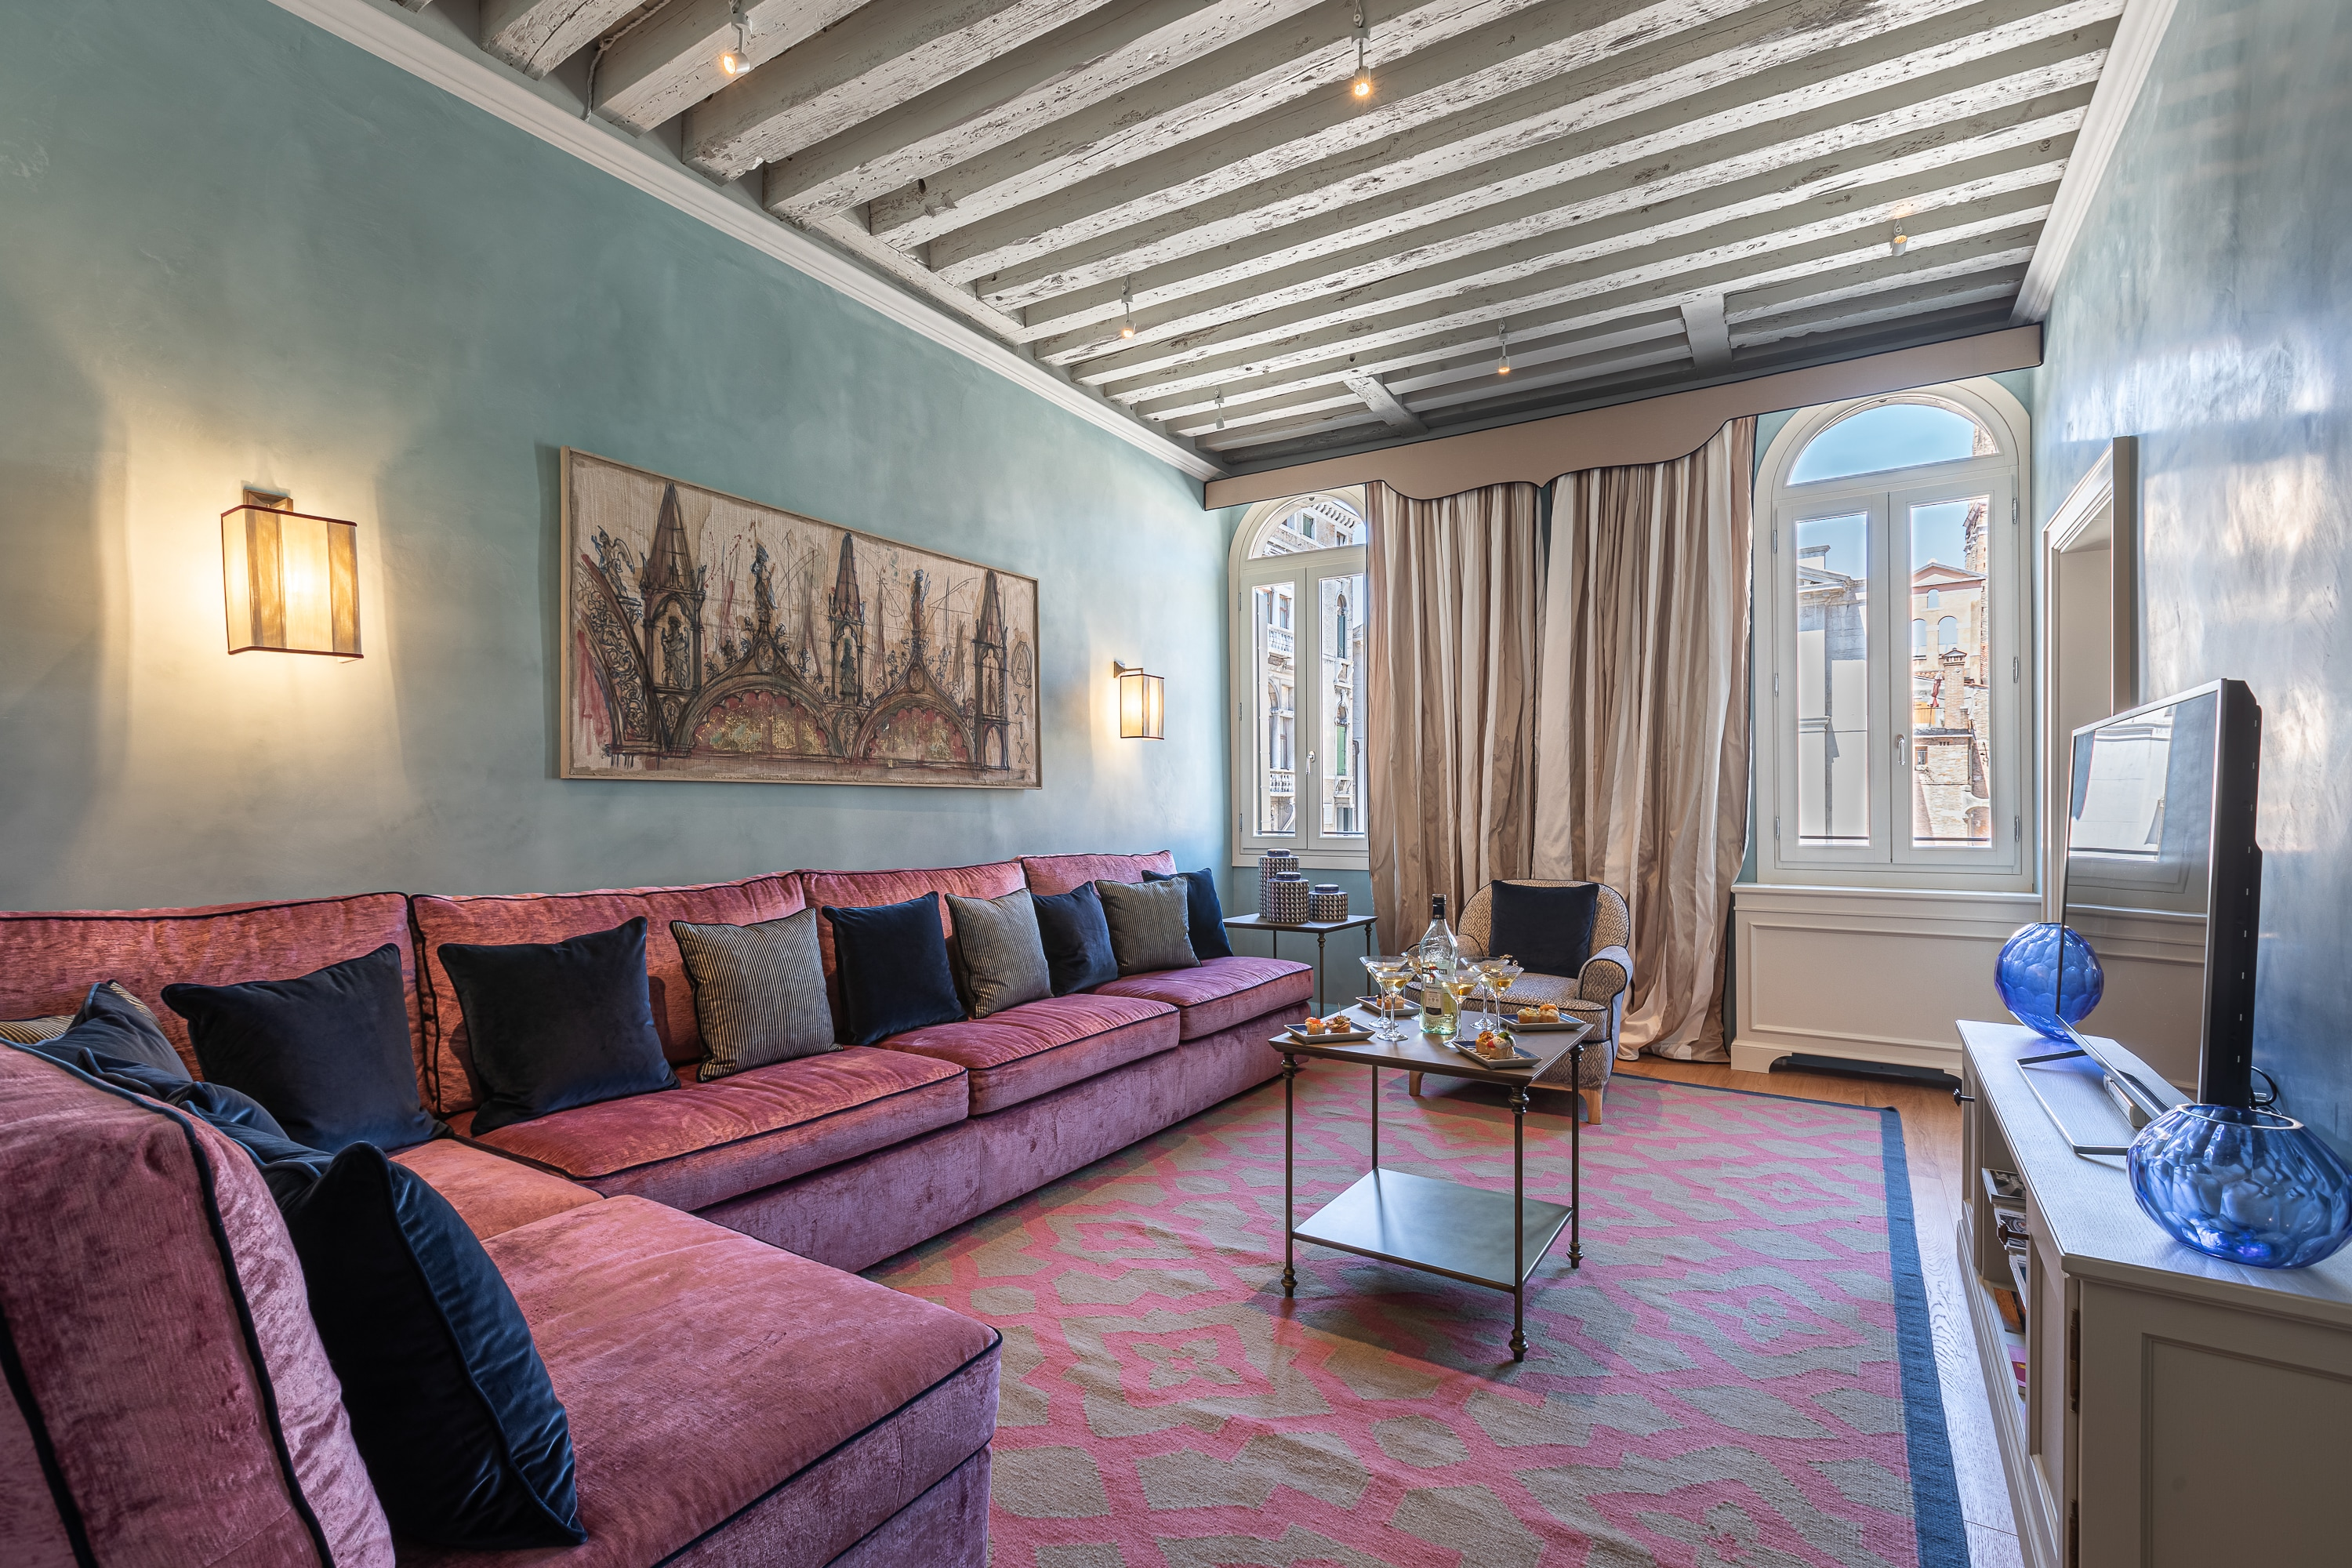 Property Image 1 - Restored impressive apartment close to Saint Mark's Square